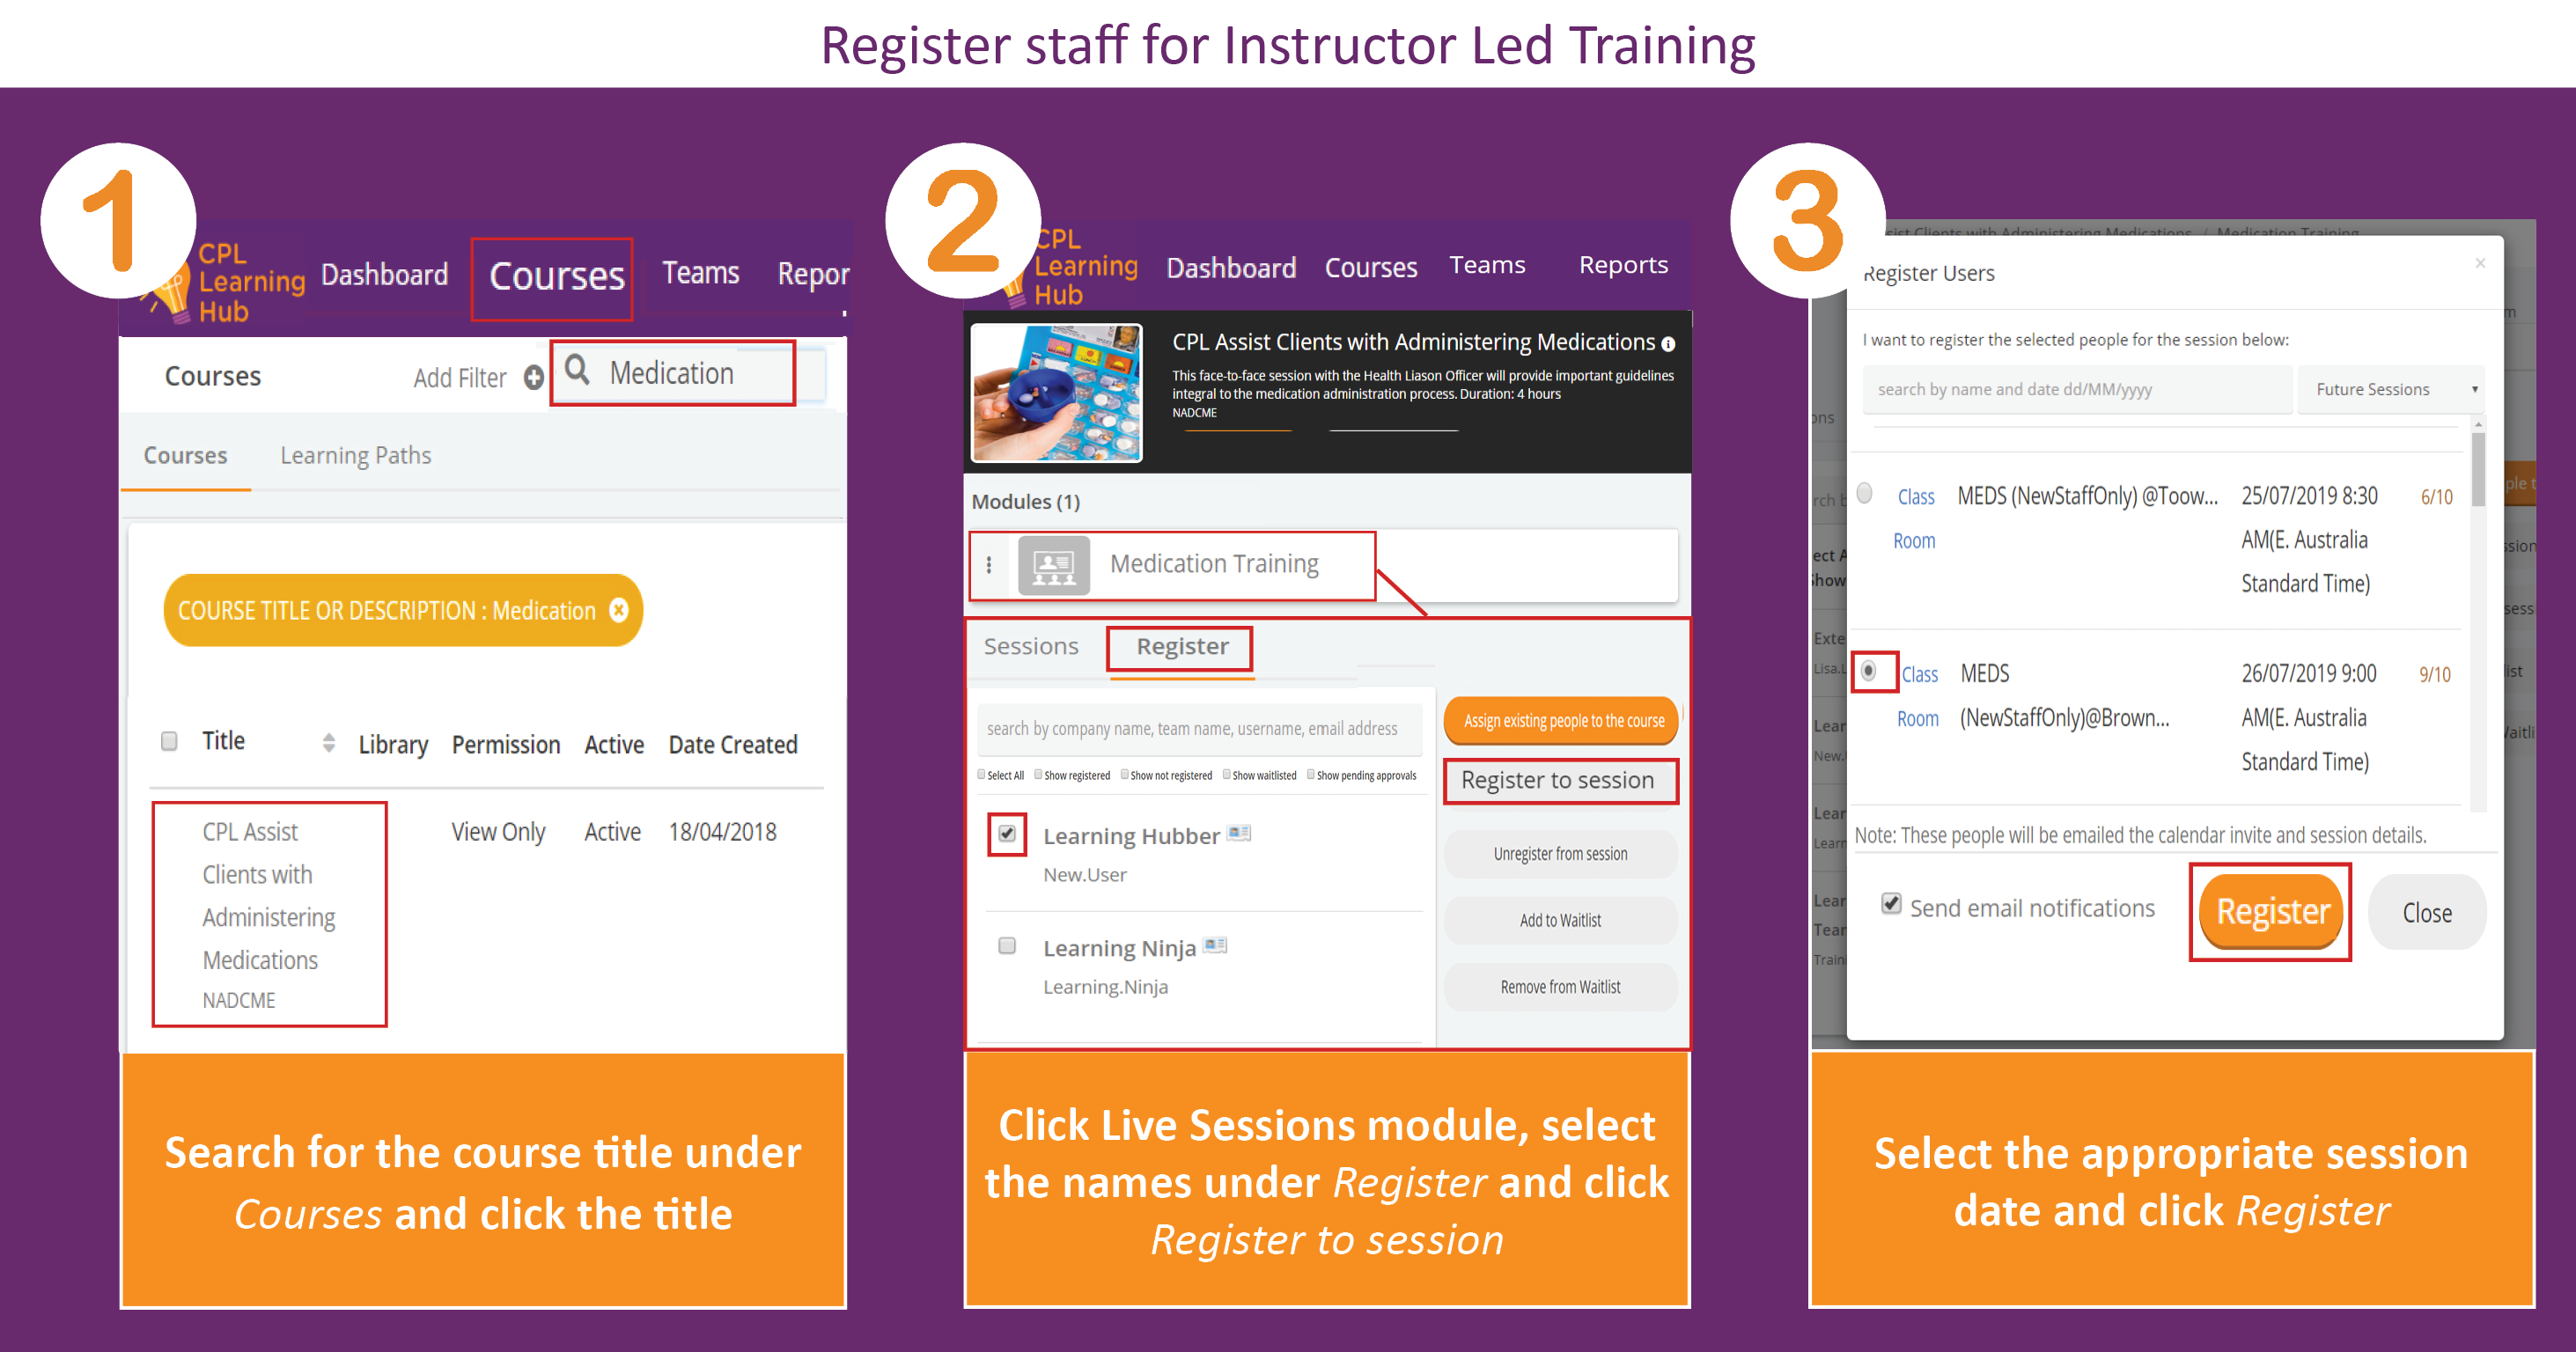 Screenshot displaying instructions for registering staff